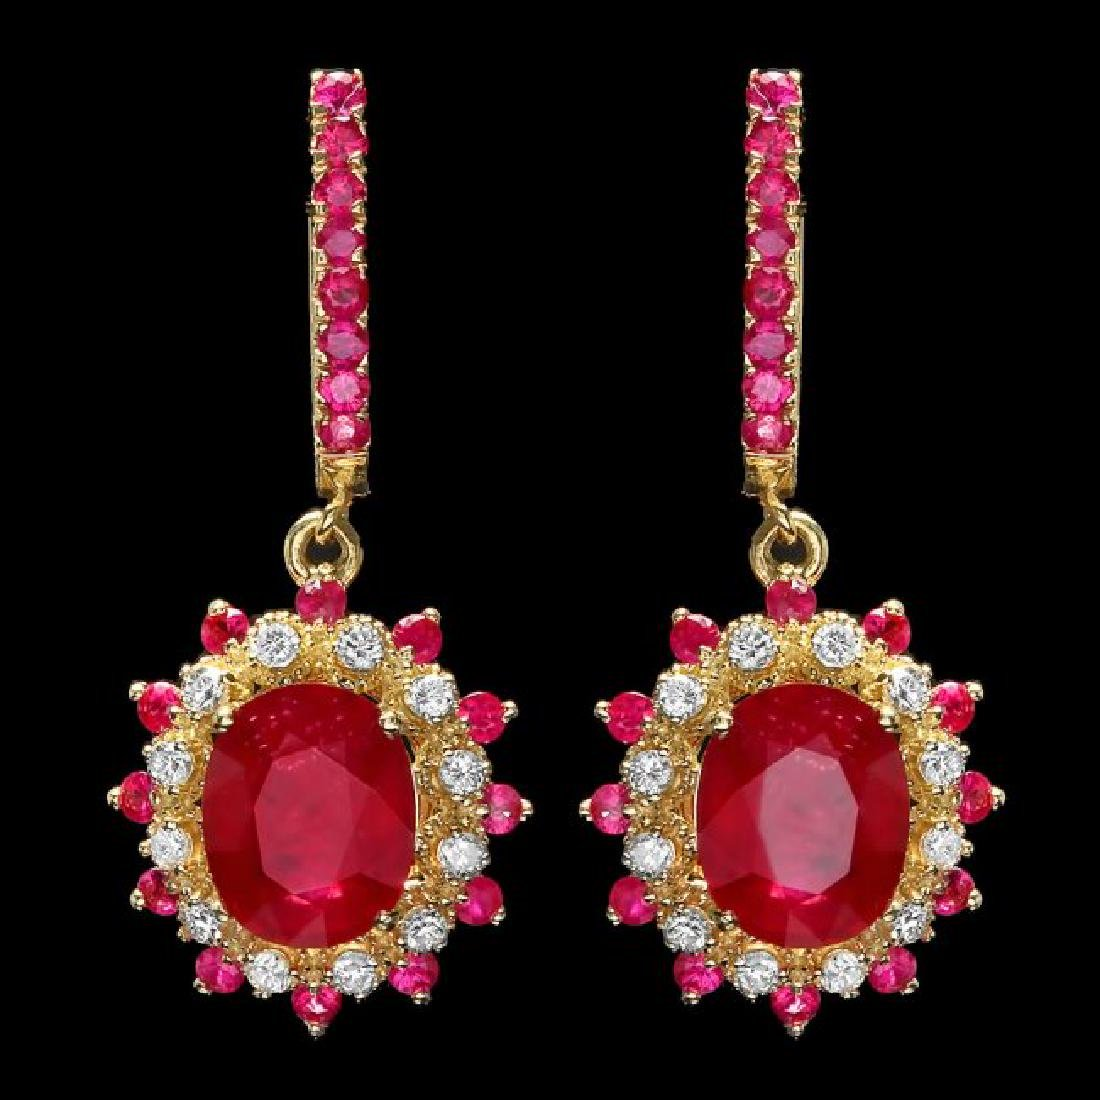 14k Gold 8.55ct Ruby 0.60ct Diamond Earrings - 2